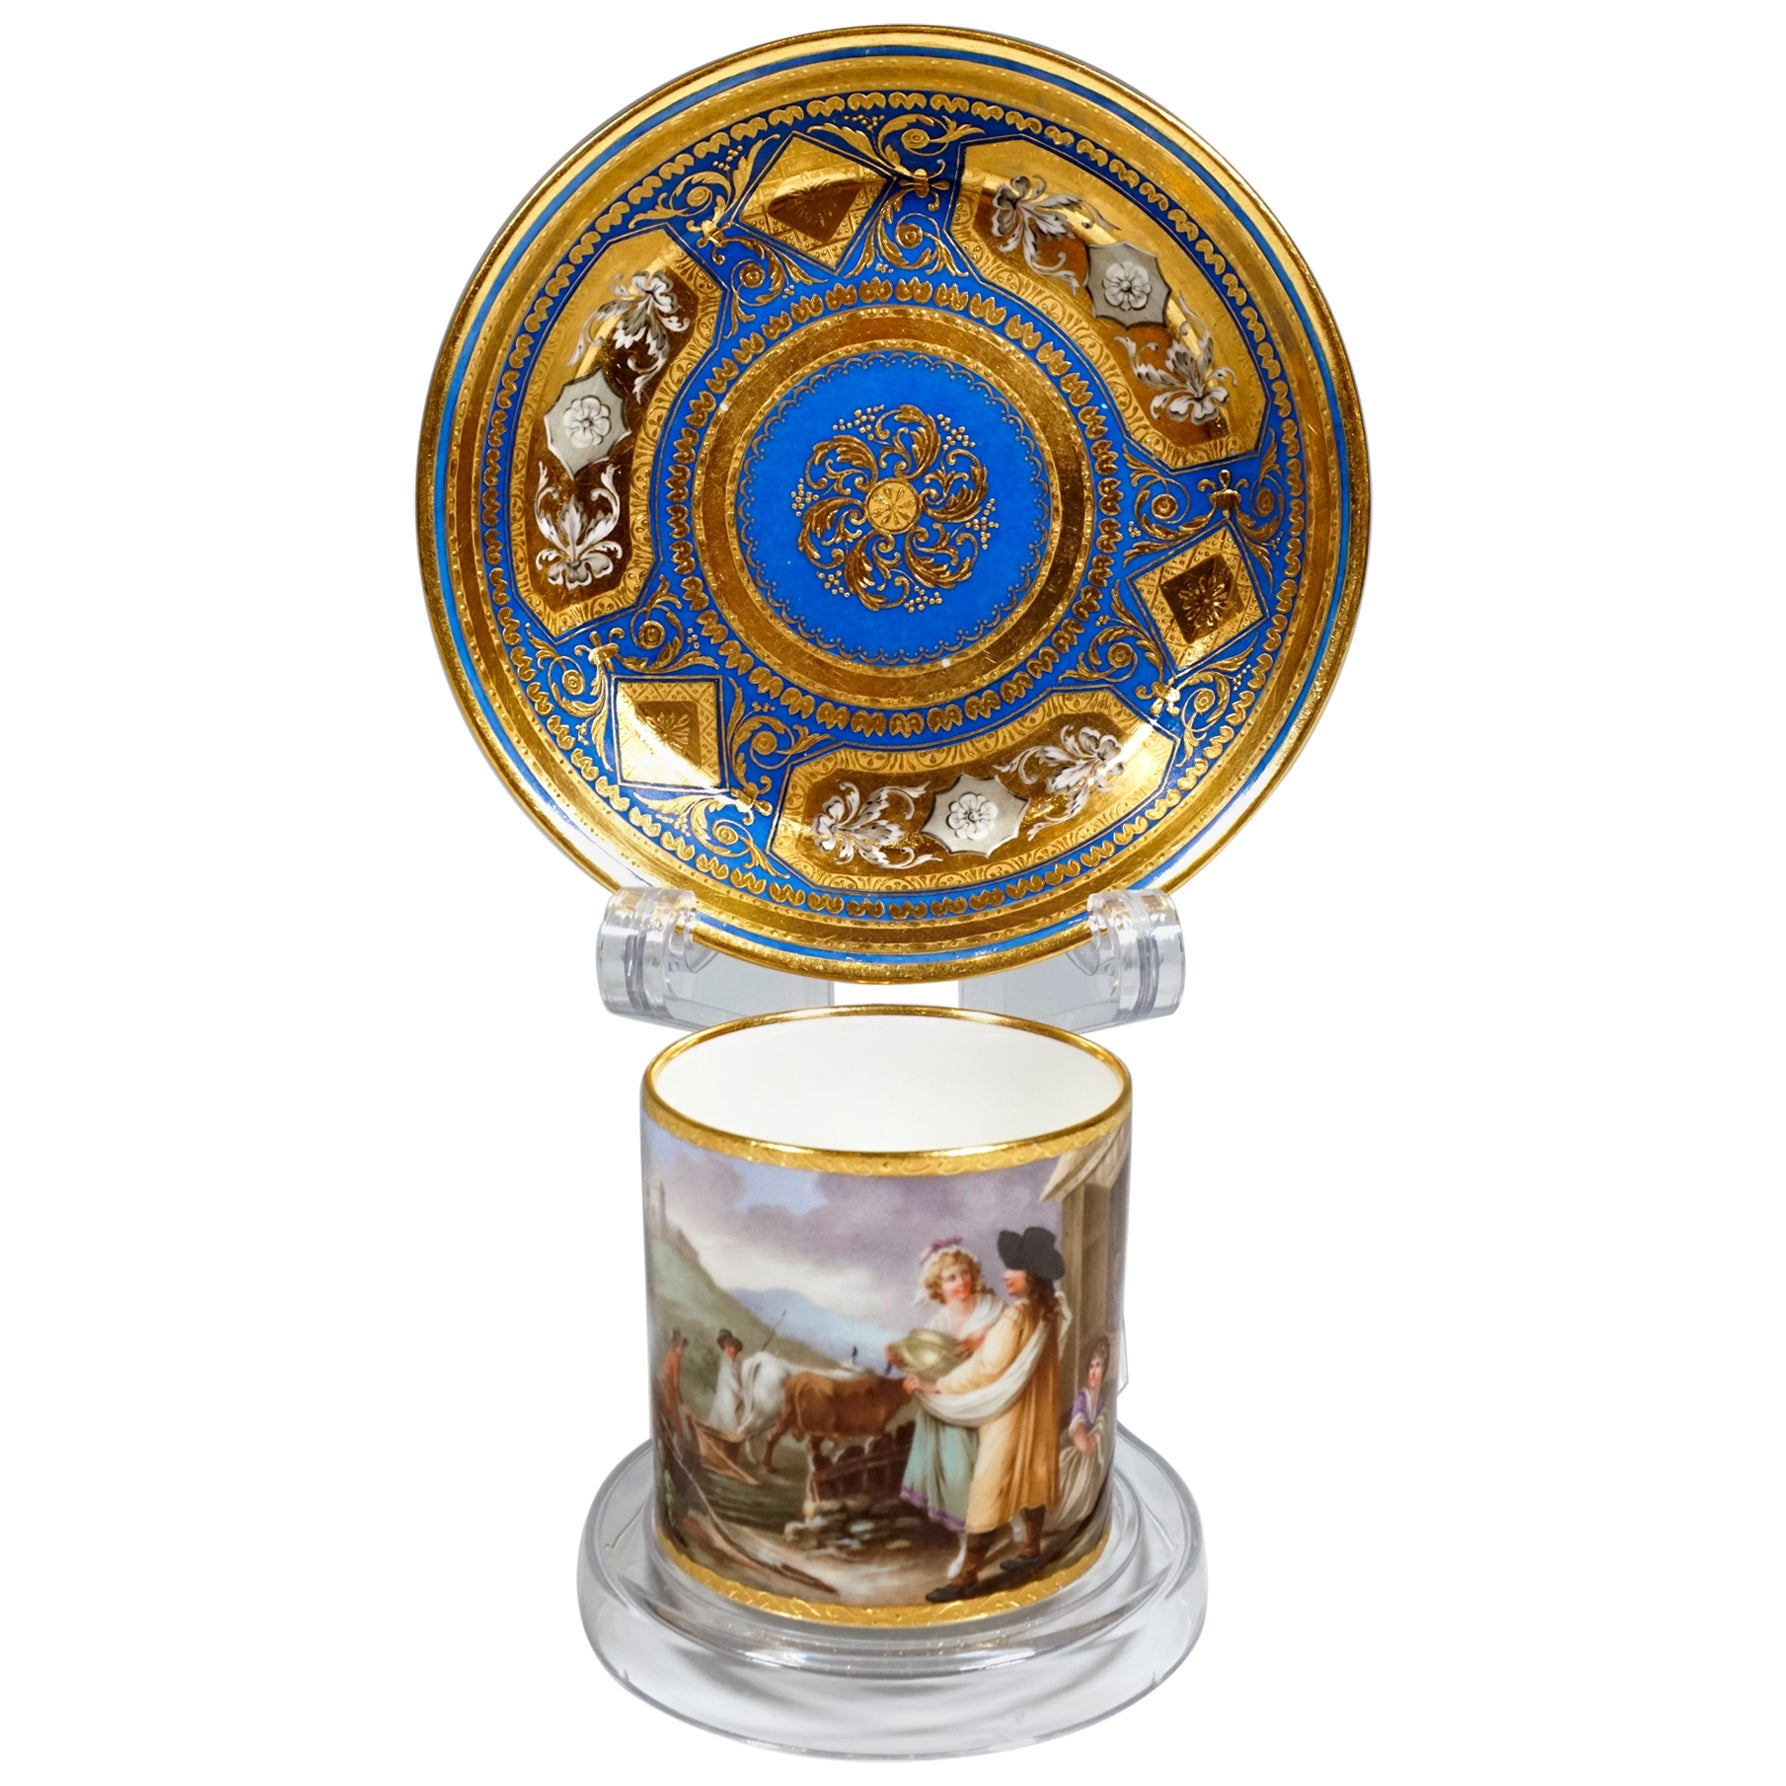 Viennese Imperial Porcelain Collecting Cup with Genre Scene, Sorgenthal, 1801